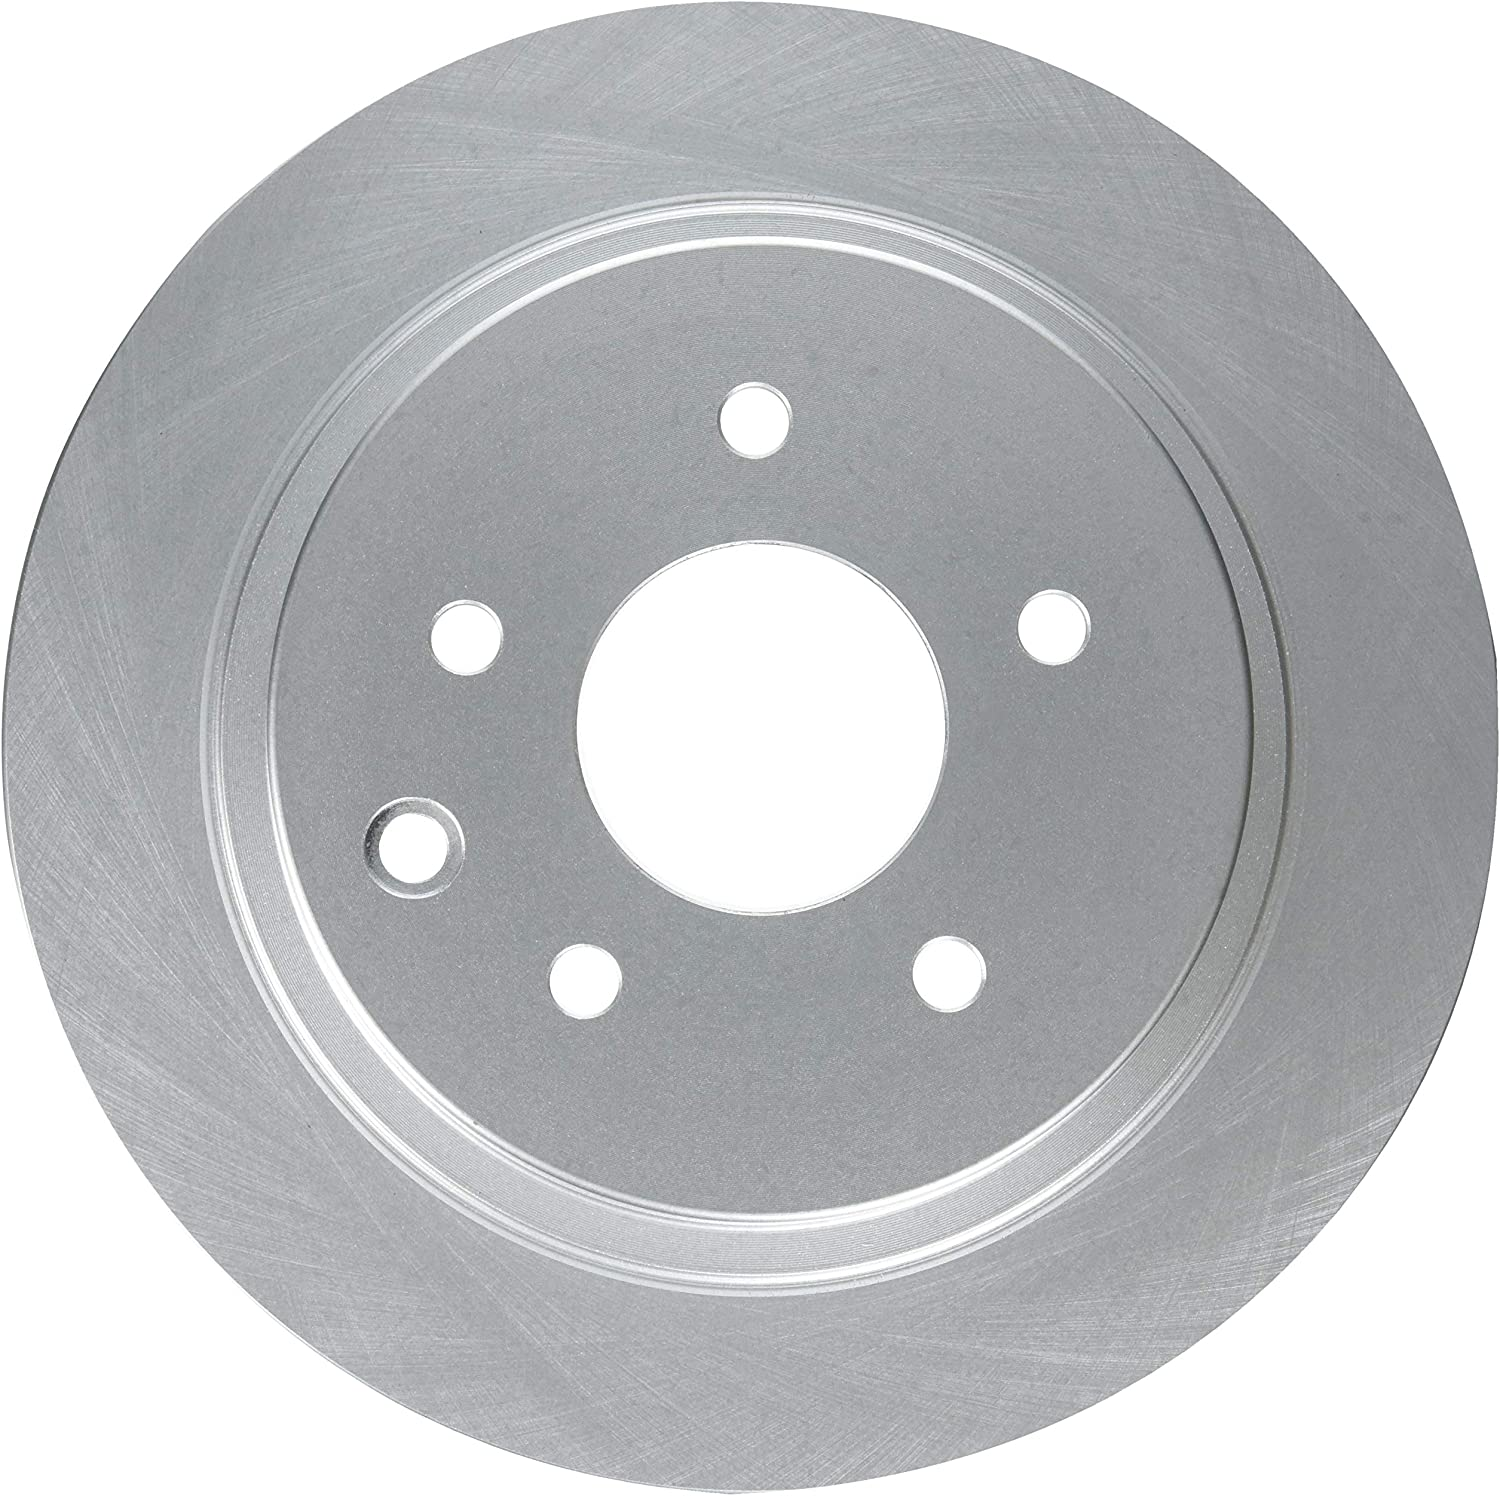 Raybestos 980070FZN Rust Prevention 100% quality warranty! Coated Rotor Max 79% OFF Technology Brak